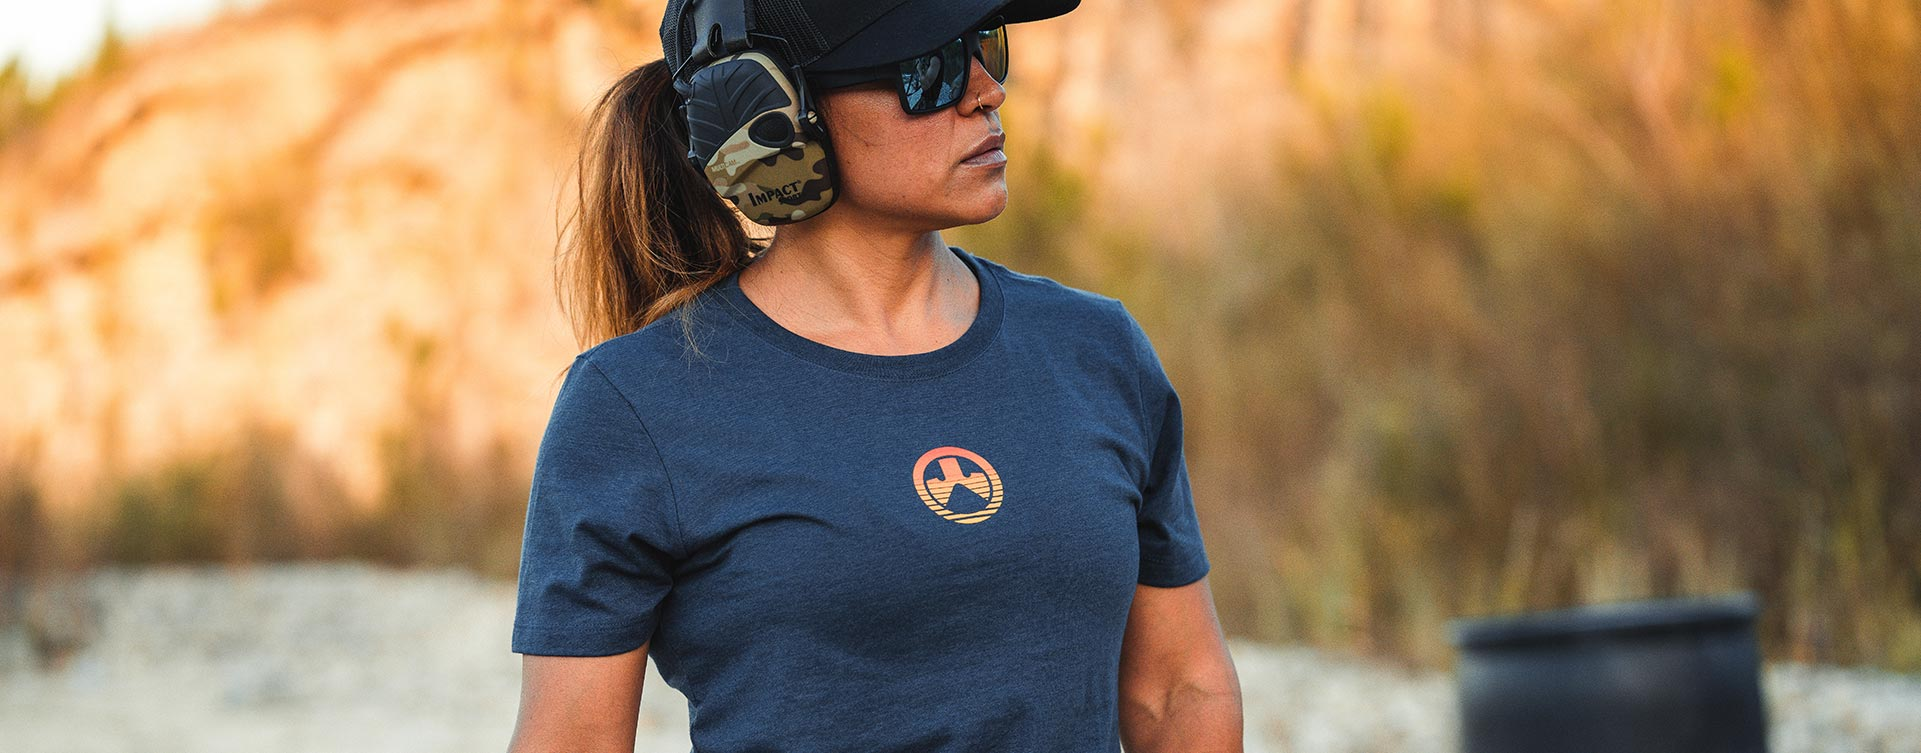 Front of Magpul Women's Sun's Out CVC T-Shirt on female shooter with ear-pro, Magpul Eyewear and hat